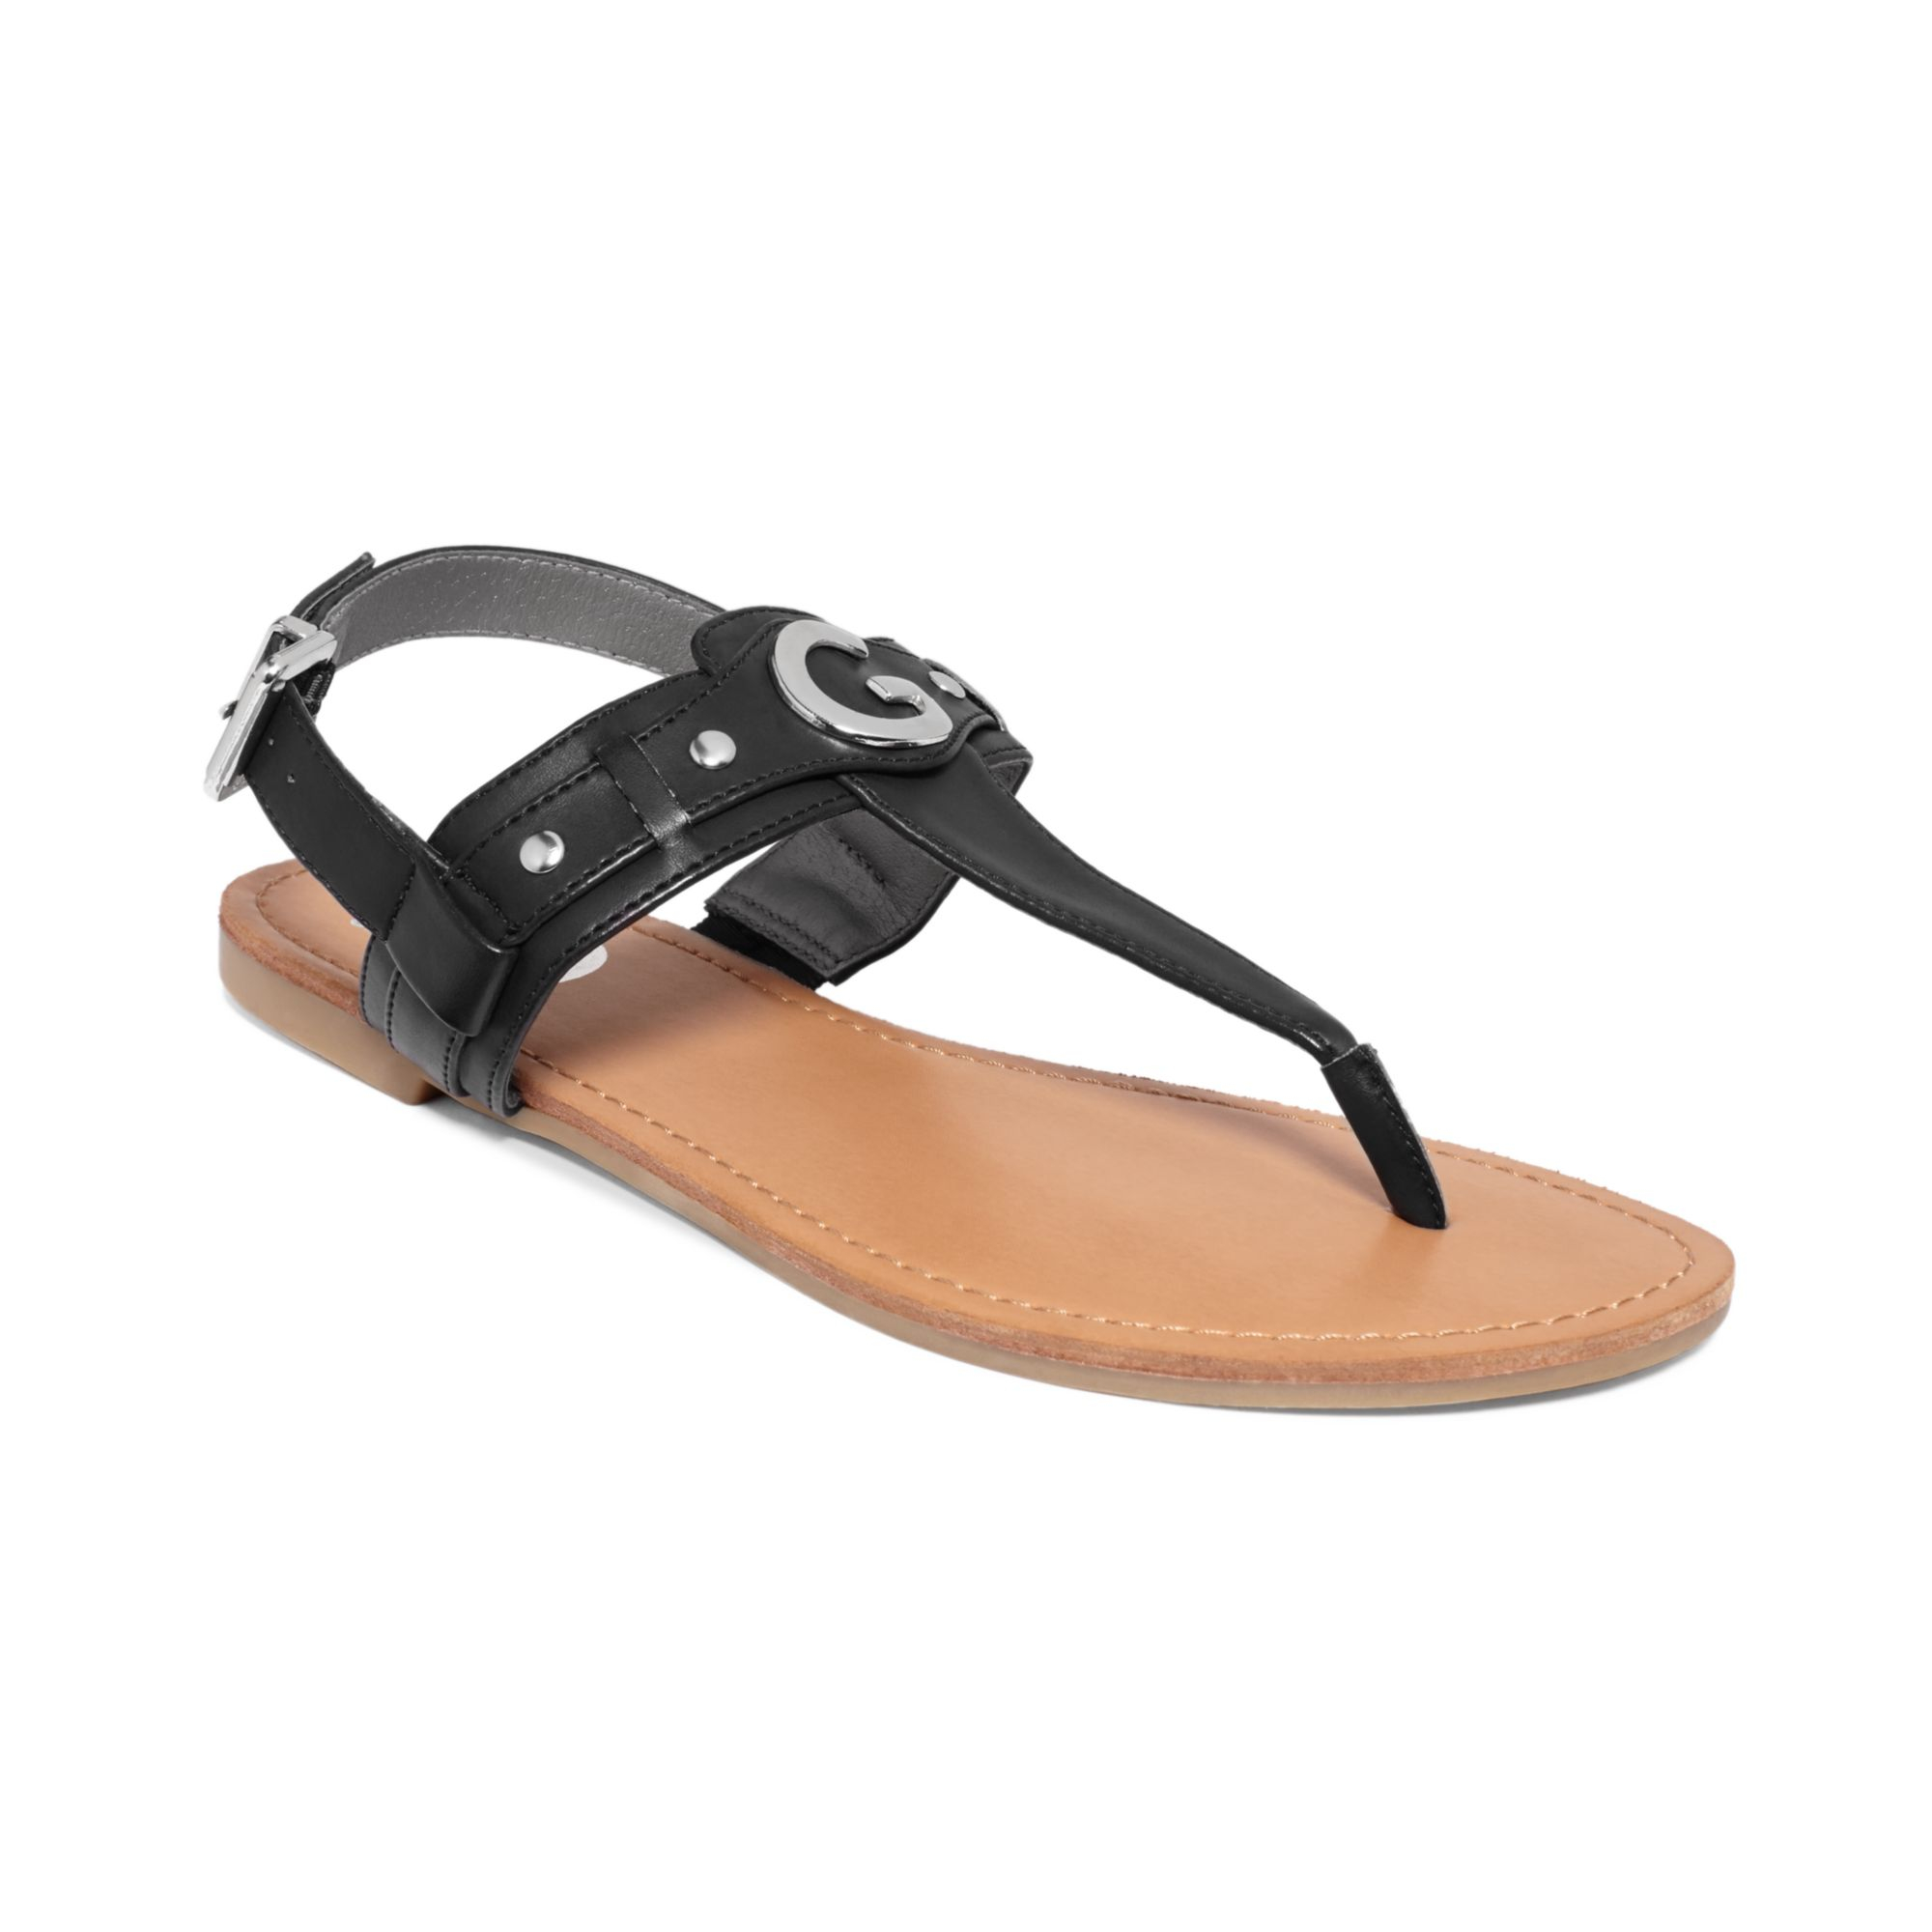 2a88987a3f9c5 Lyst - G By Guess Womens Lundon Flat Thong Sandals in Black ...